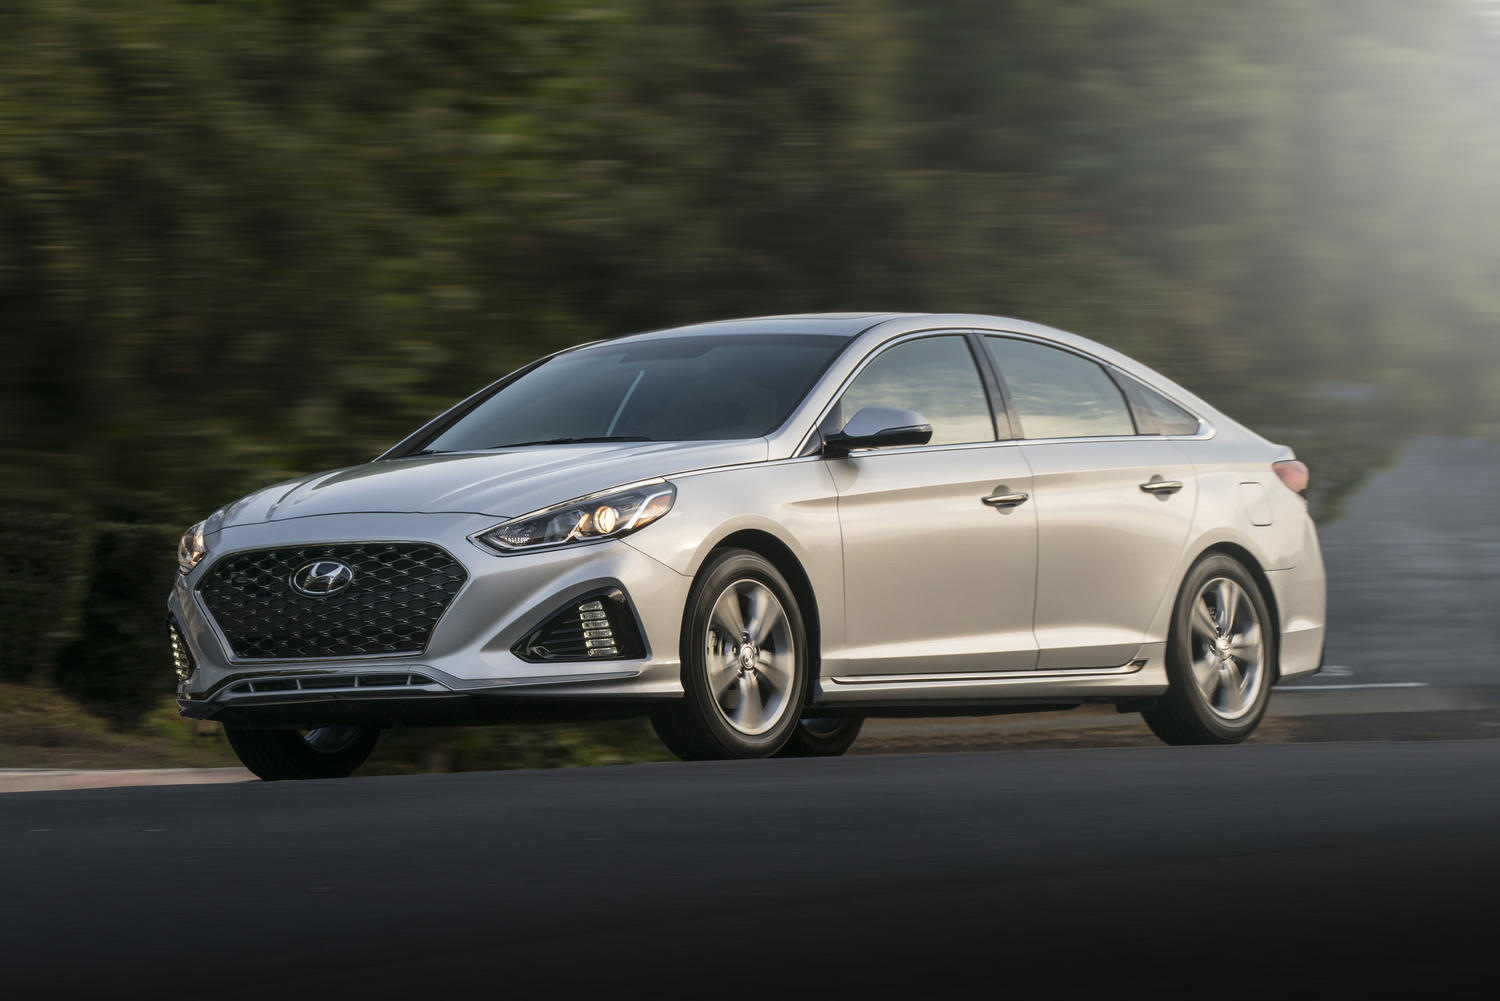 David Dewhurst Photography 2018 Hyundai Sonata